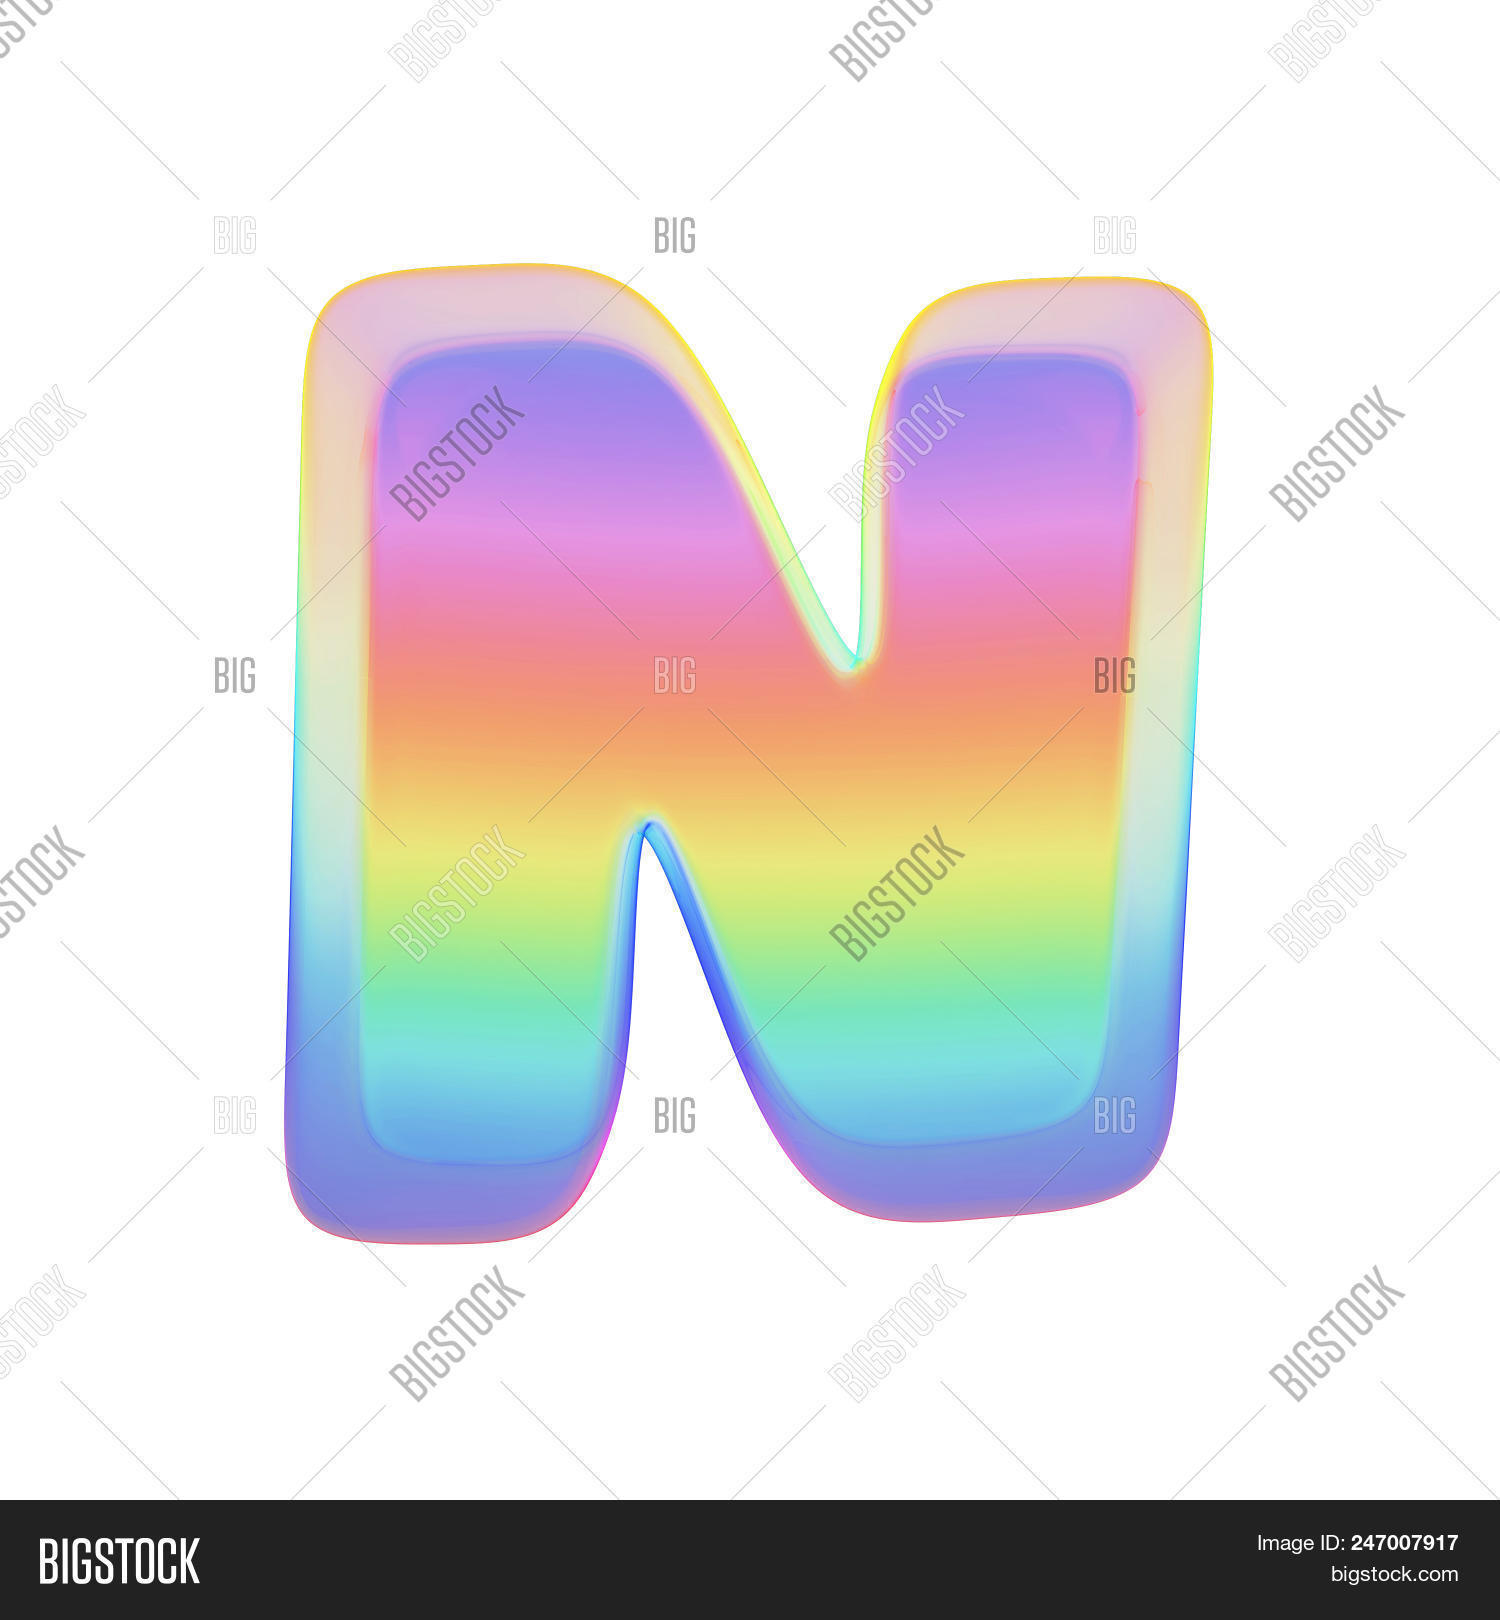 Alphabet Letter N Image & Photo (Free Trial) | Bigstock